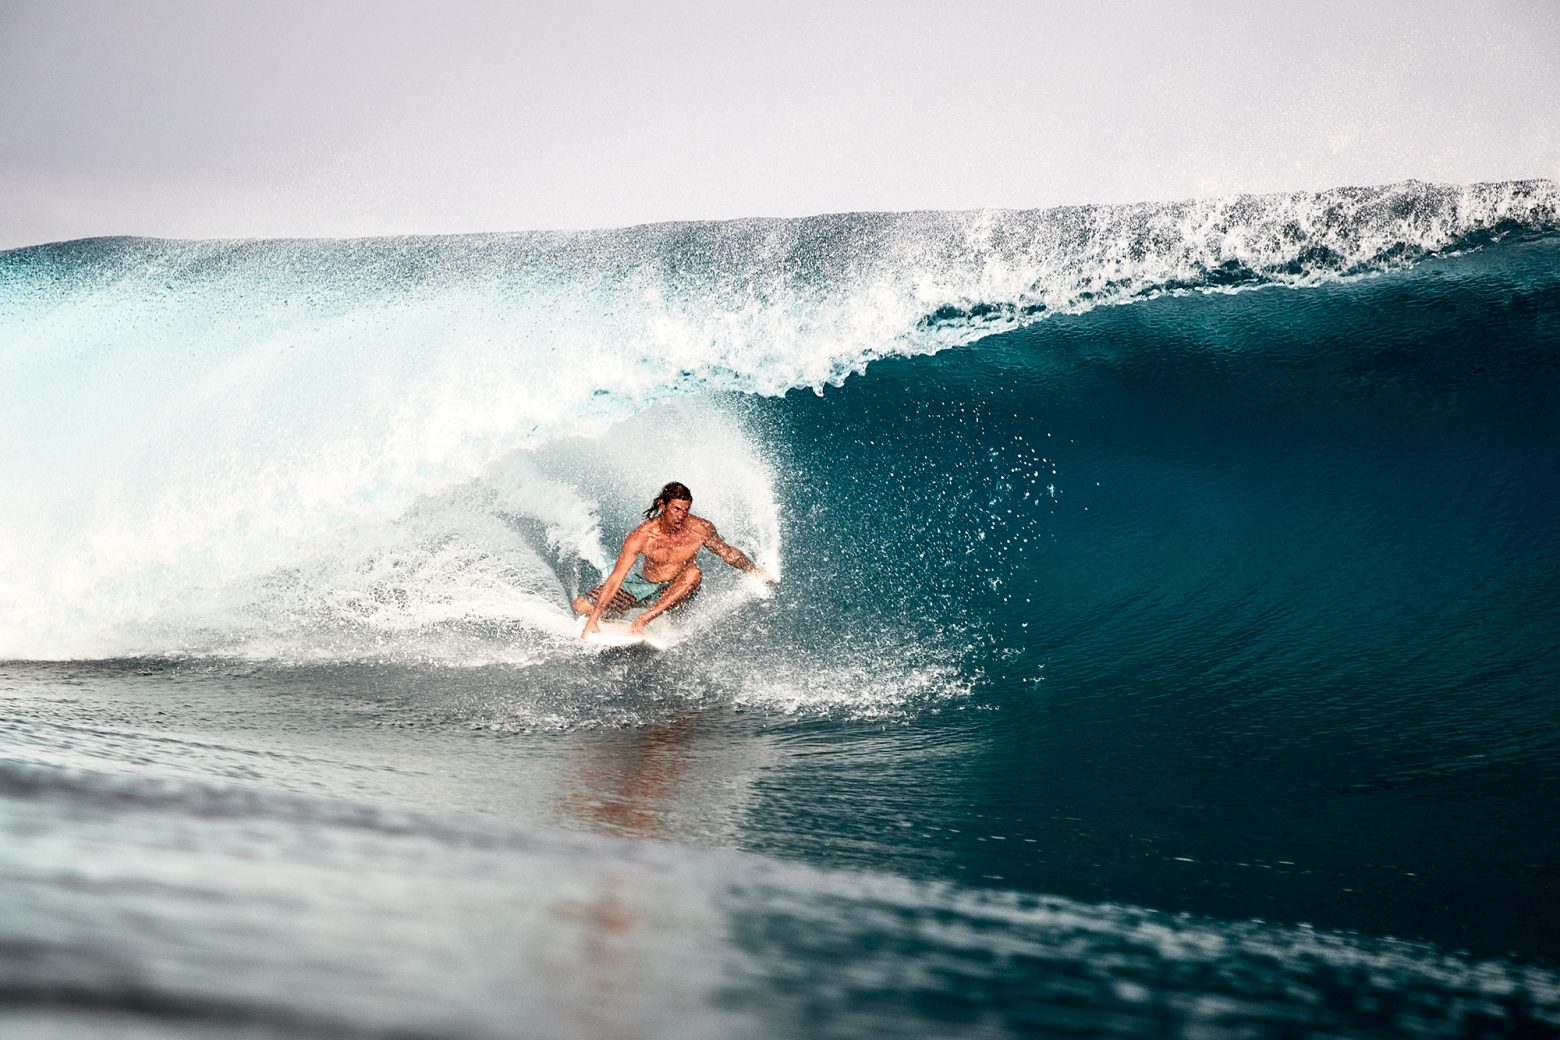 Sitting in the pocket. He was shredded on the reef straight after this